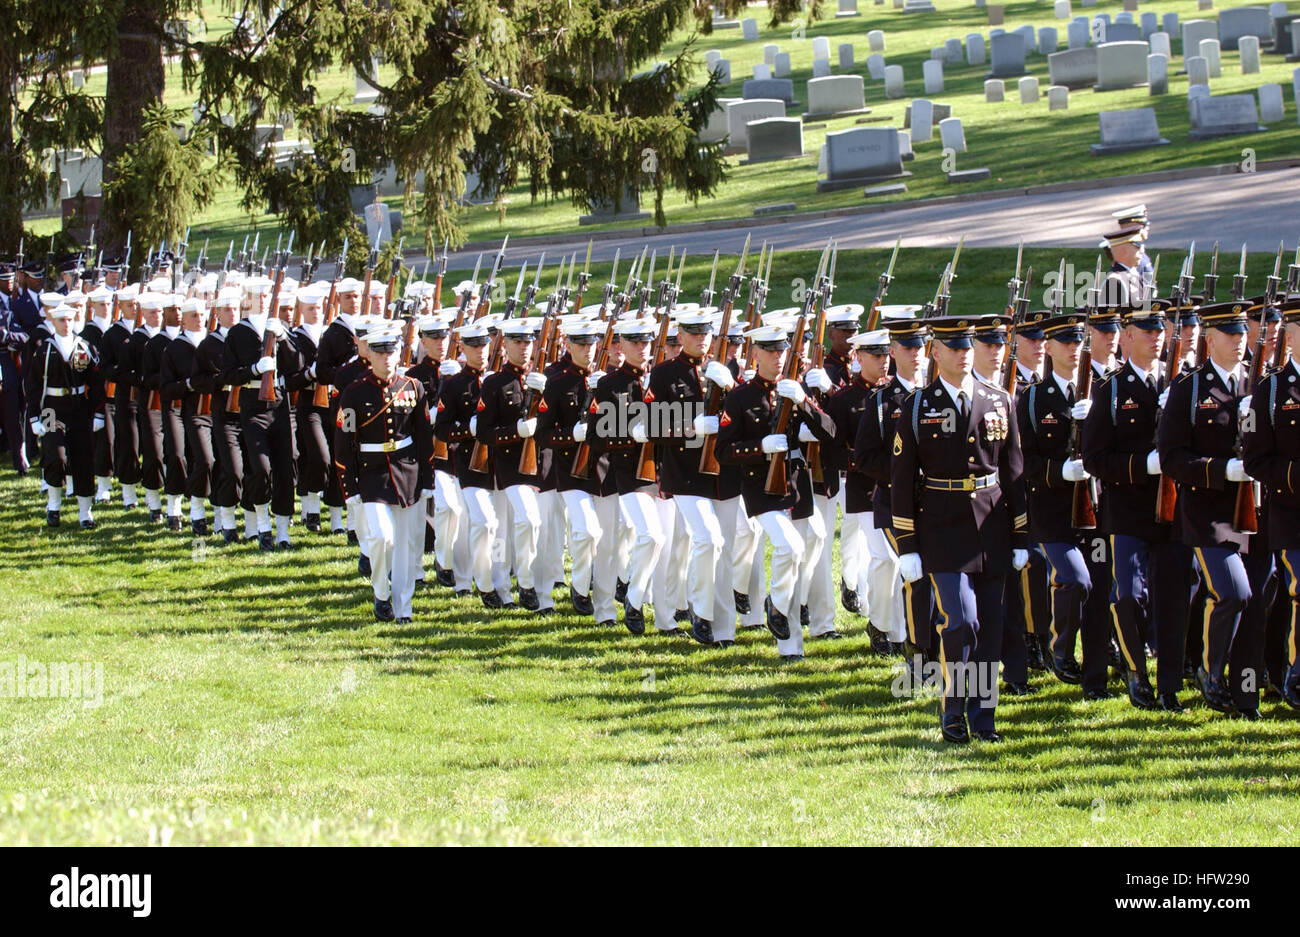 071031-N-1134L-019 ANNAPOLIS, Md. (Oct. 31, 2007) - Ceremonial marching platoons assigned to Military District Washington - Stock Image